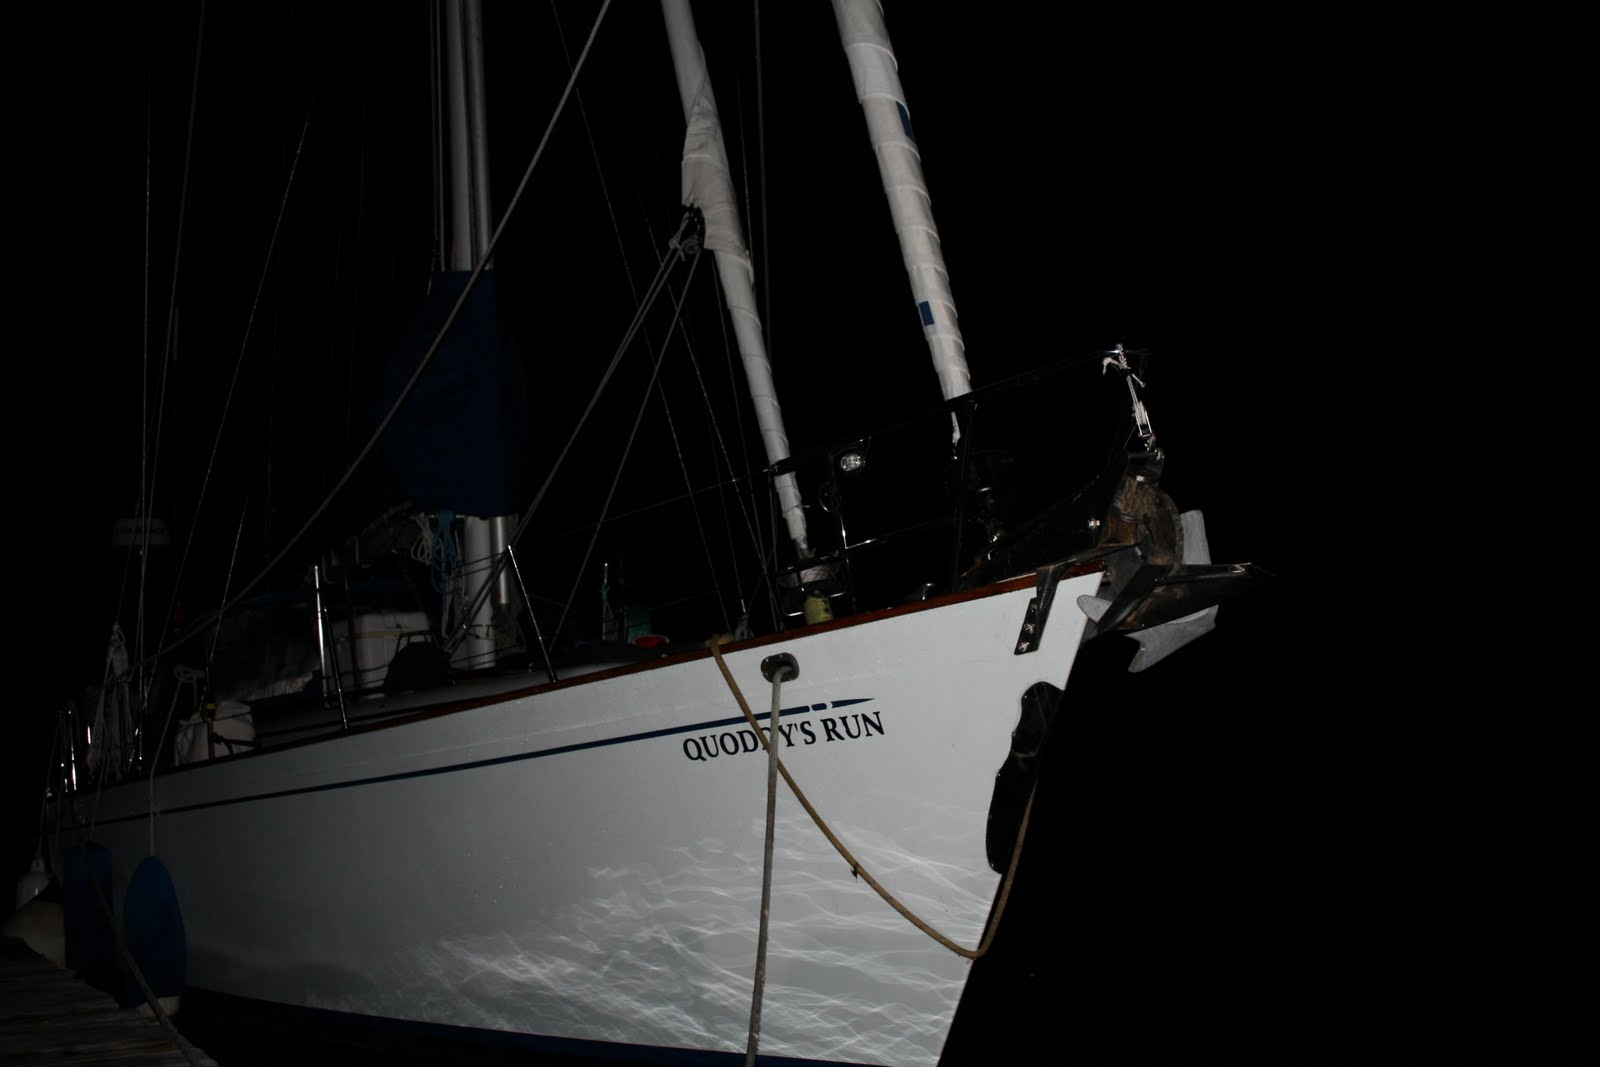 At dock in the night